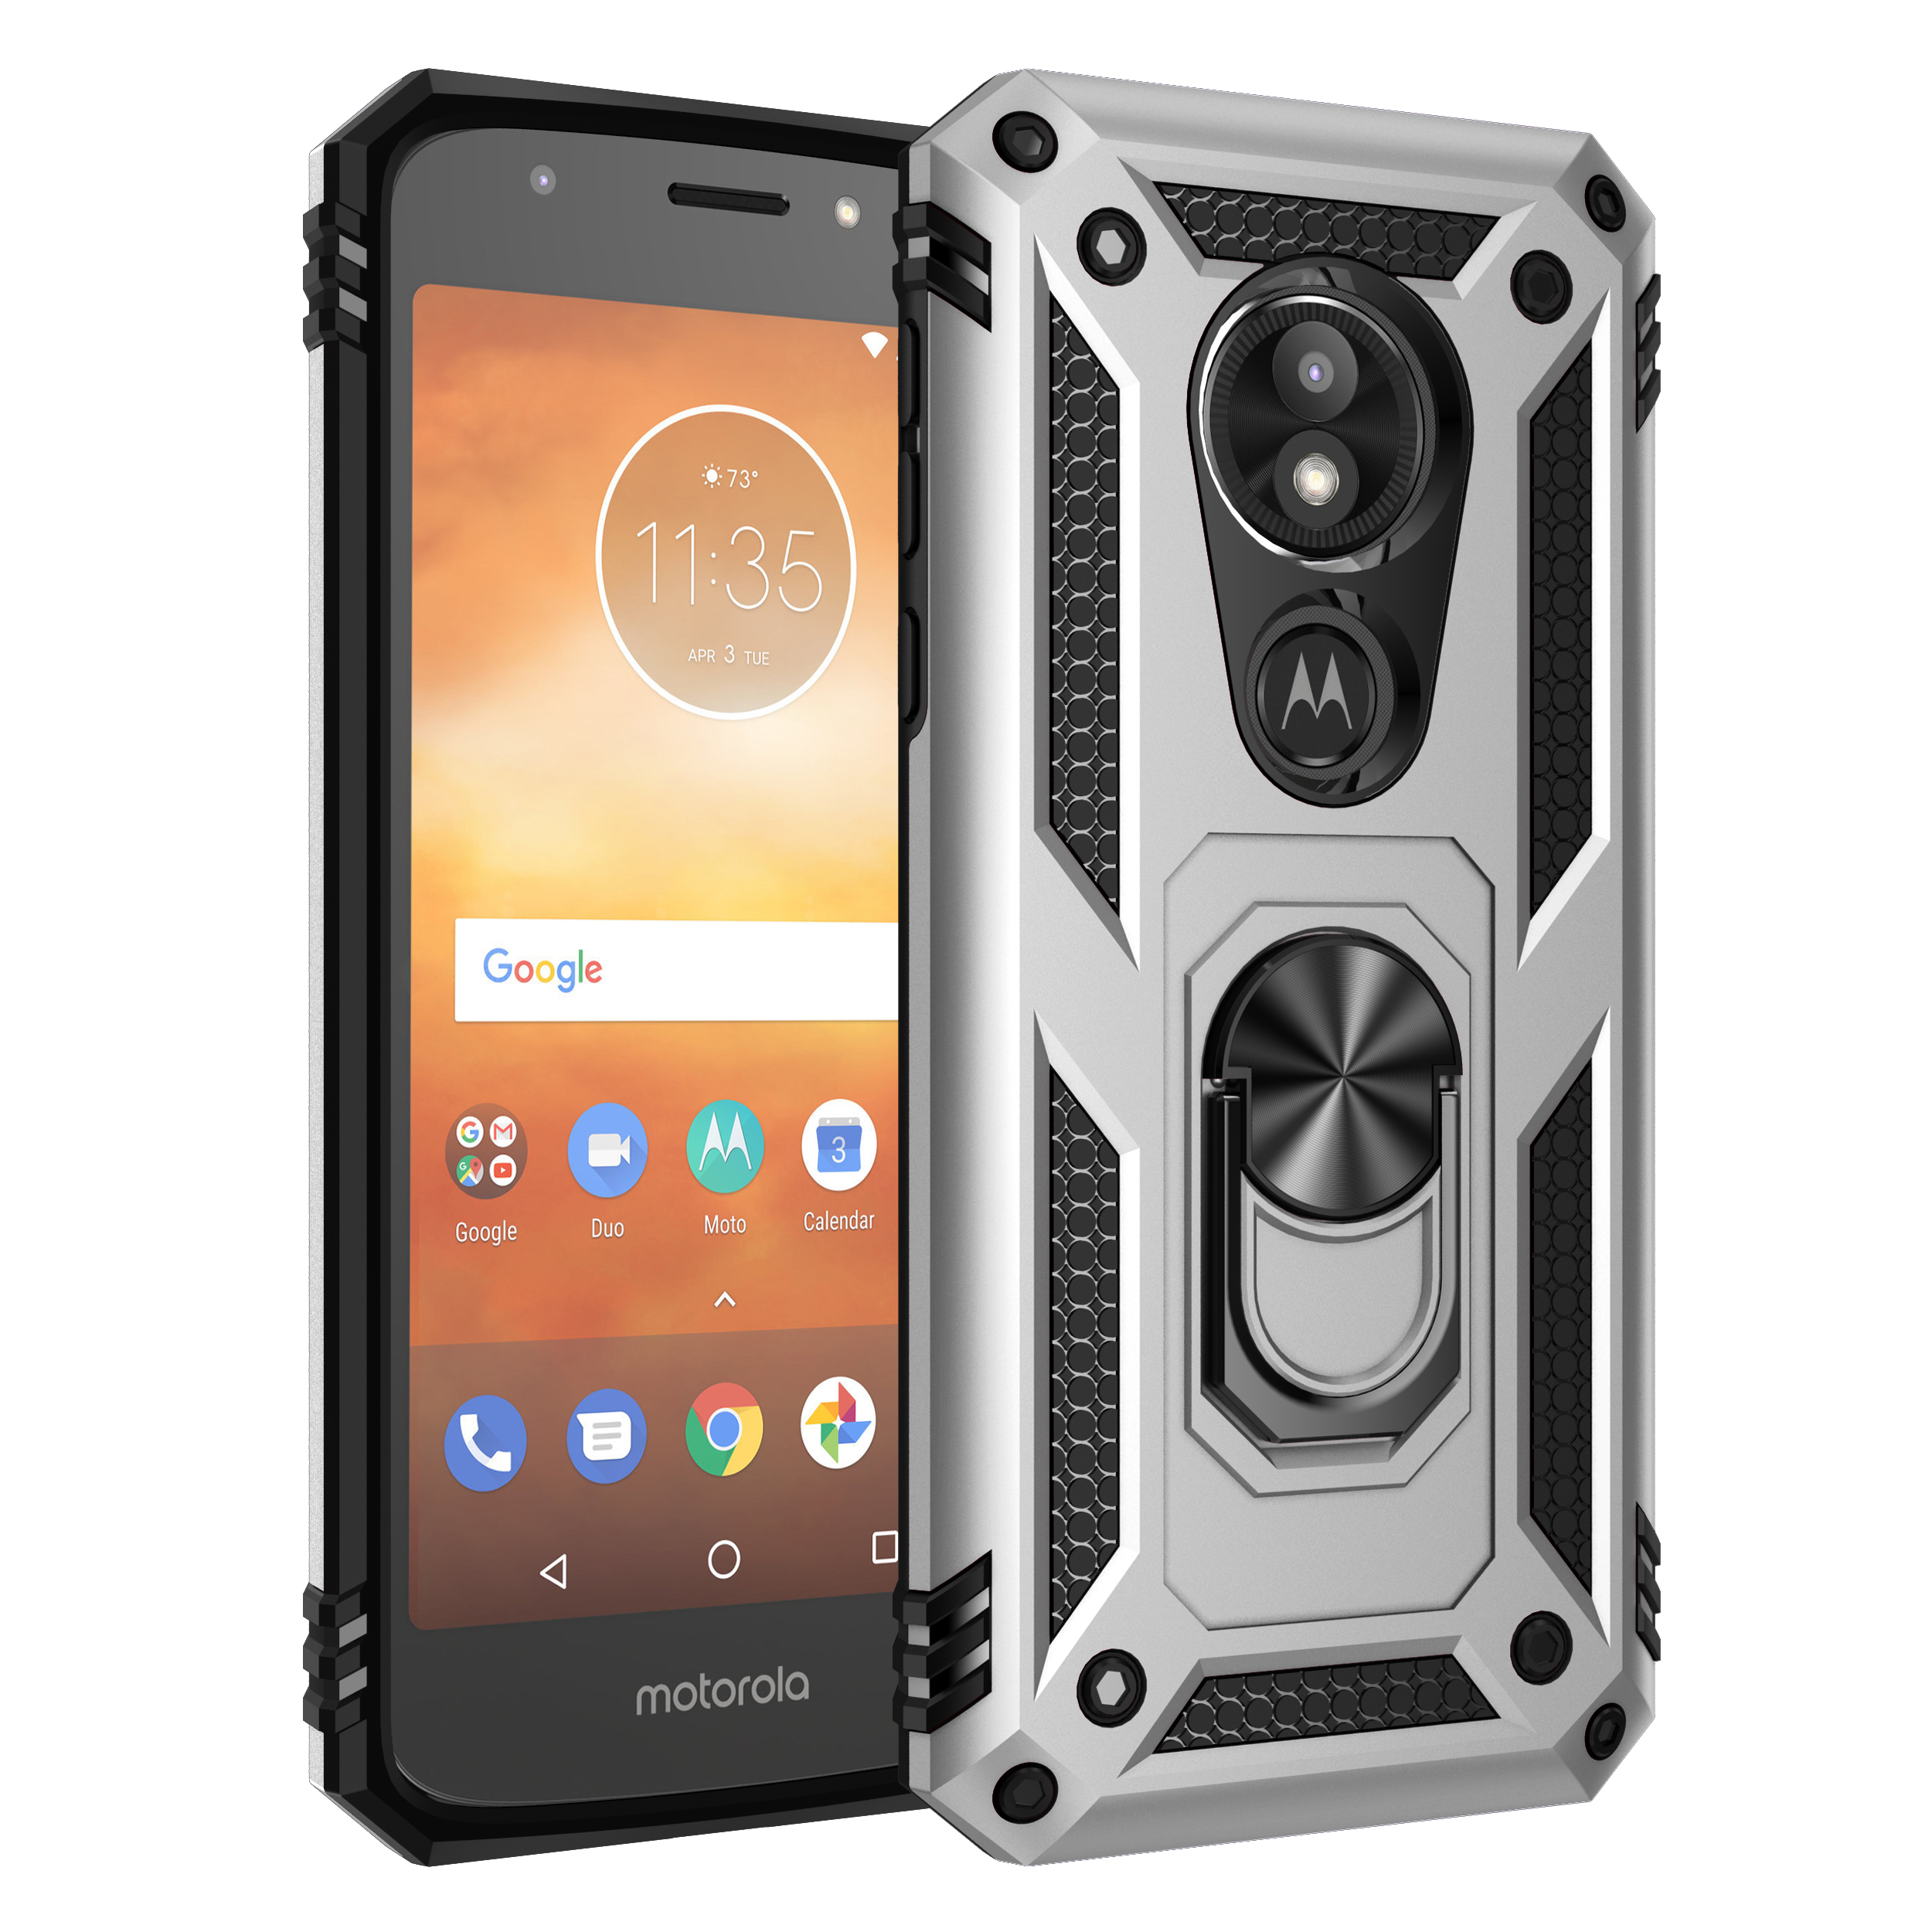 Armor Shockproof Bumper Phone Case For MOTO G6 G7 E6 P40 Z4 E5 One Zoom Play Pro Plus Power Play Ring Stand Holder Back Cover